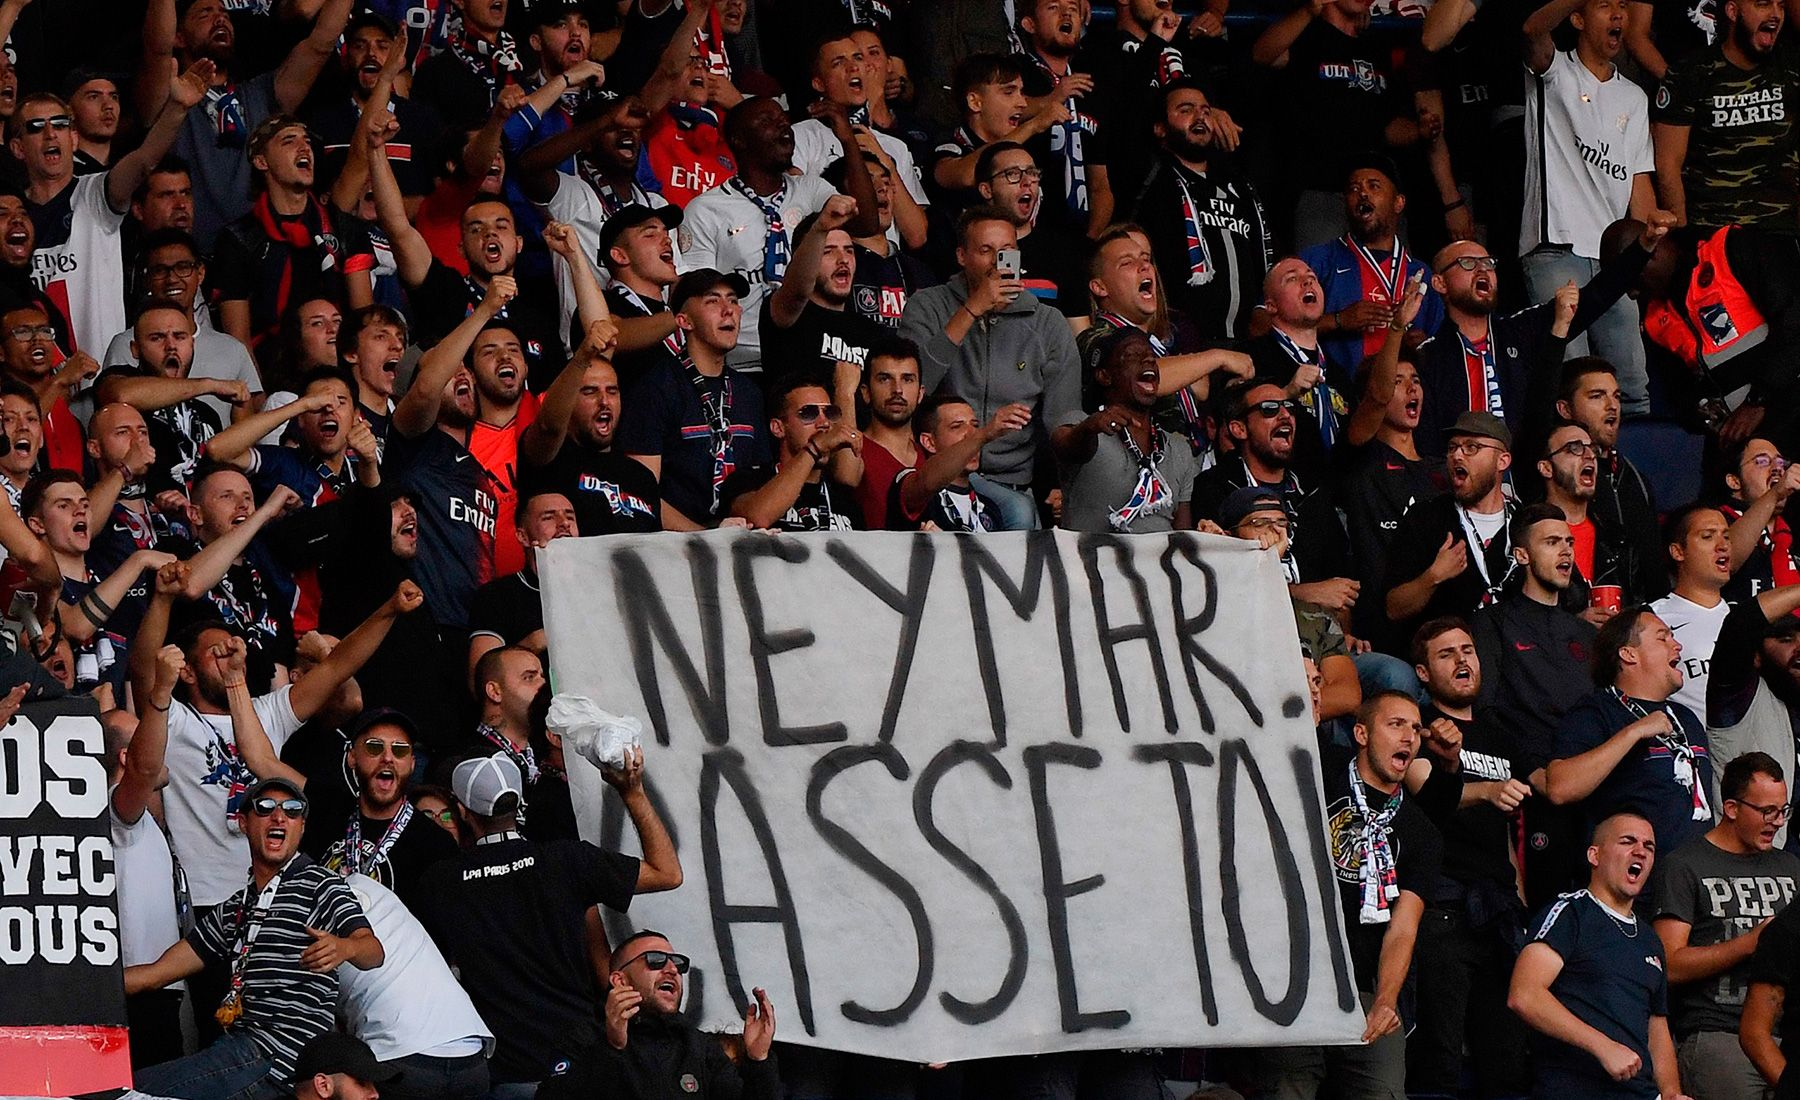 The Psg Fans Get Fed Up With Neymar And Attacks Him With Several Banners Against Him